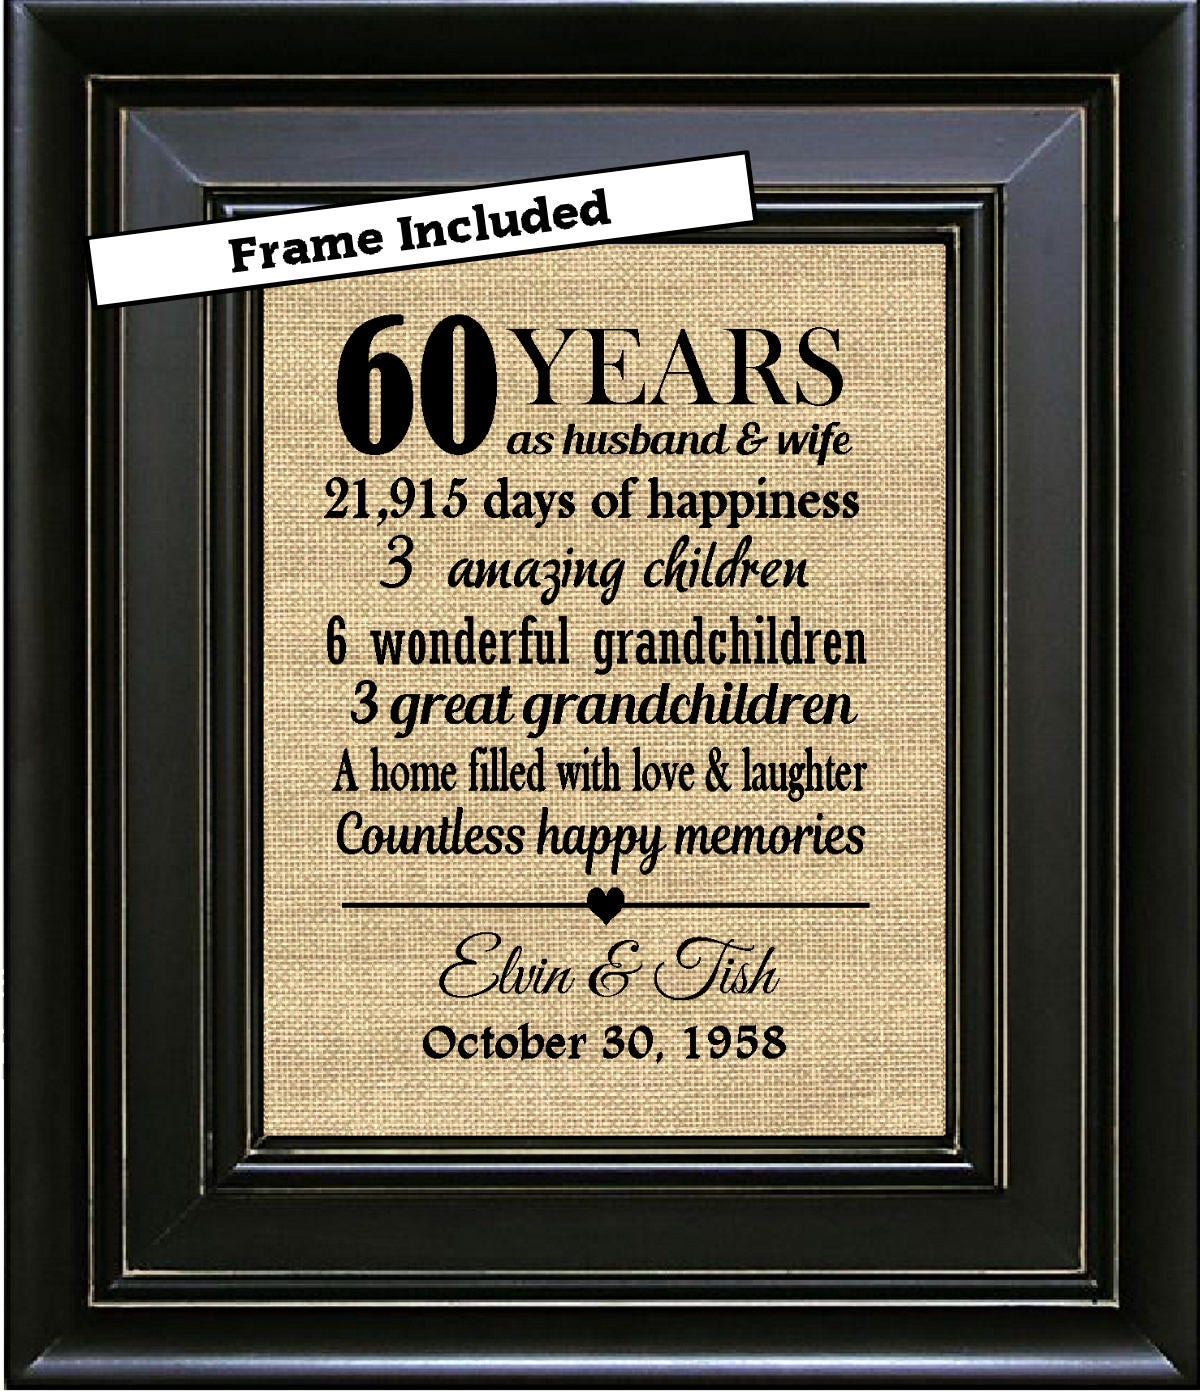 Wedding Anniversaries Traditional Gifts: FRAMED 60th Wedding Anniversary/60th Anniversary Gifts/60th